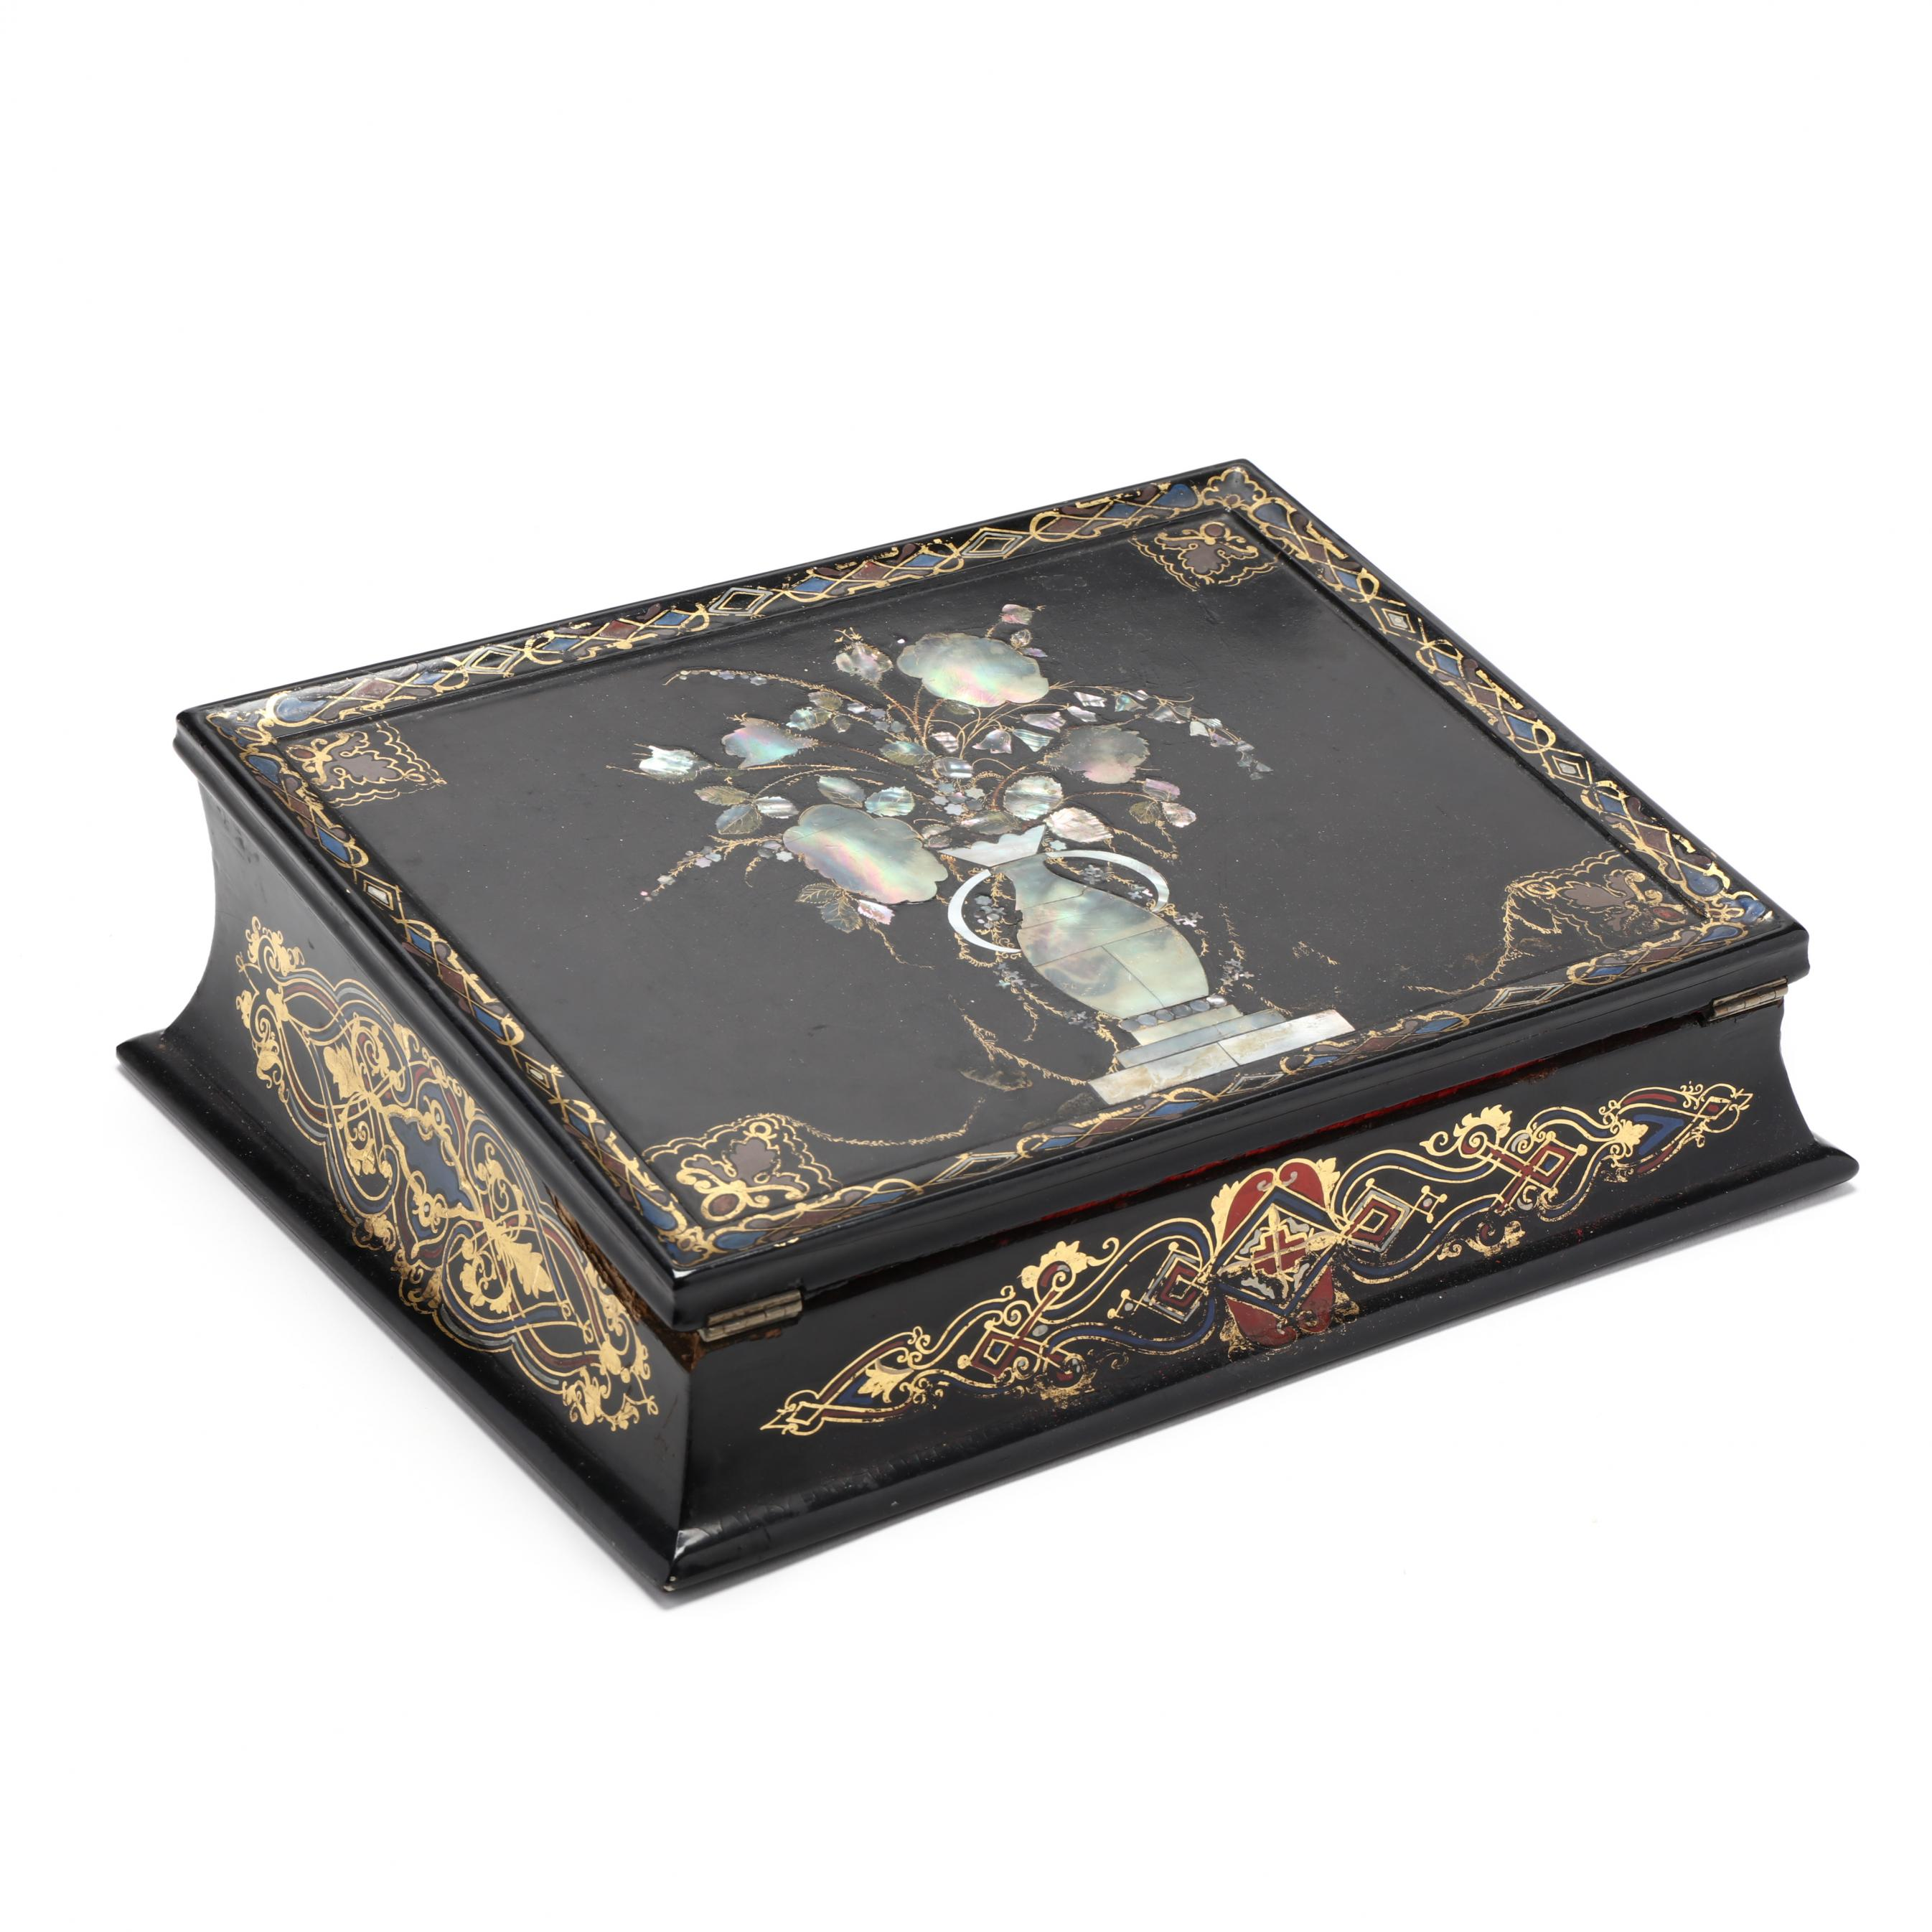 antique-english-mother-of-pearl-inlaid-writing-desk